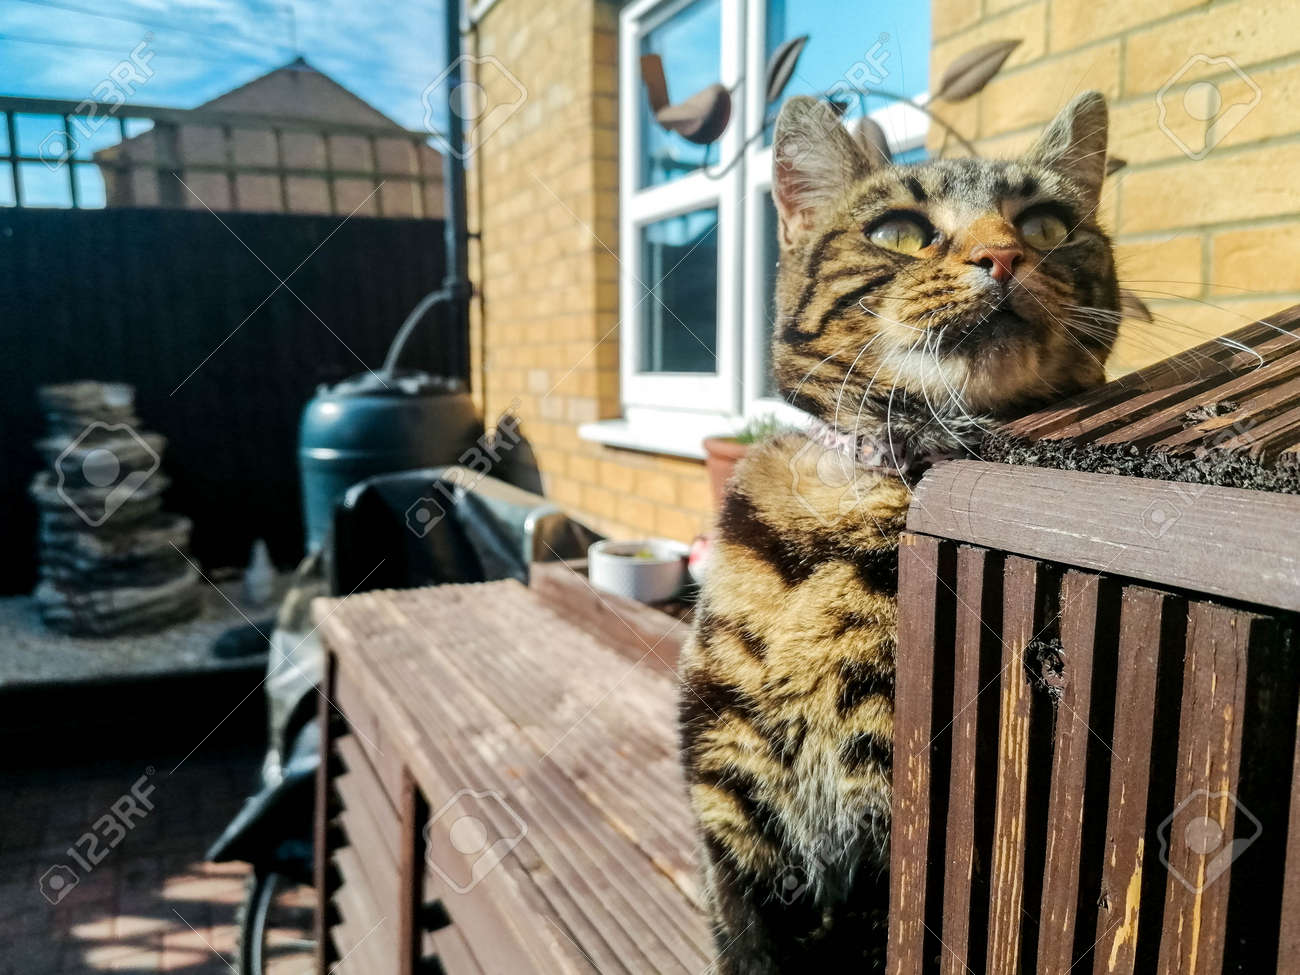 A dark coloured cat enjoys the heat of the sun, during summertime, and relaxes in the sunshine. - 168149670